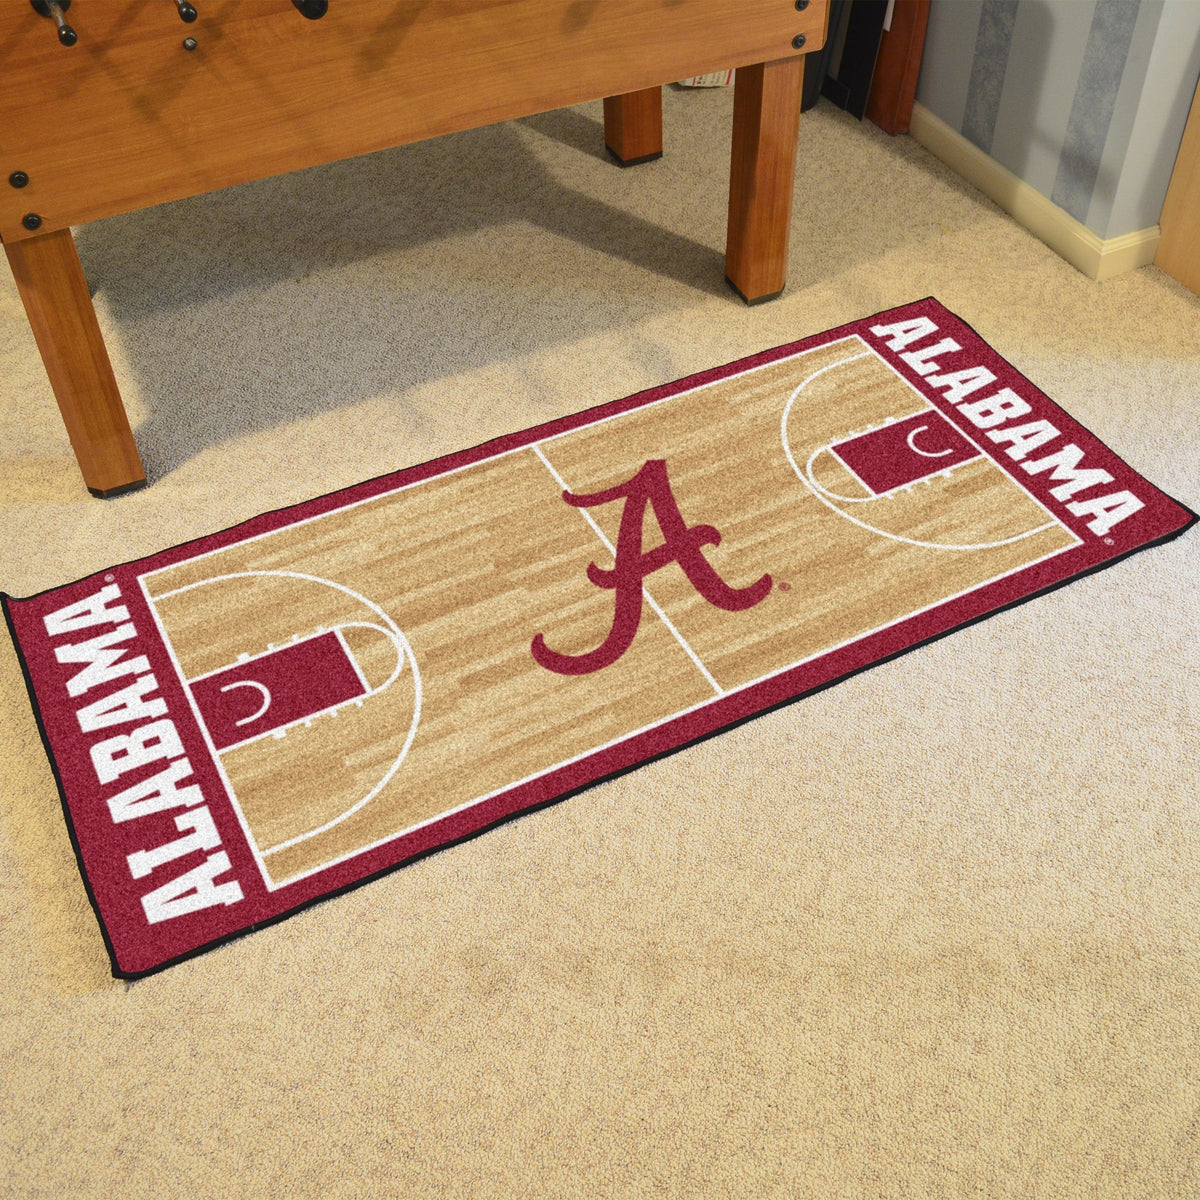 Collegiate - NCAA Basketball Runner Collegiate Mats, Rectangular Mats, NCAA Basketball Runner, Collegiate, Home Fan Mats Alabama